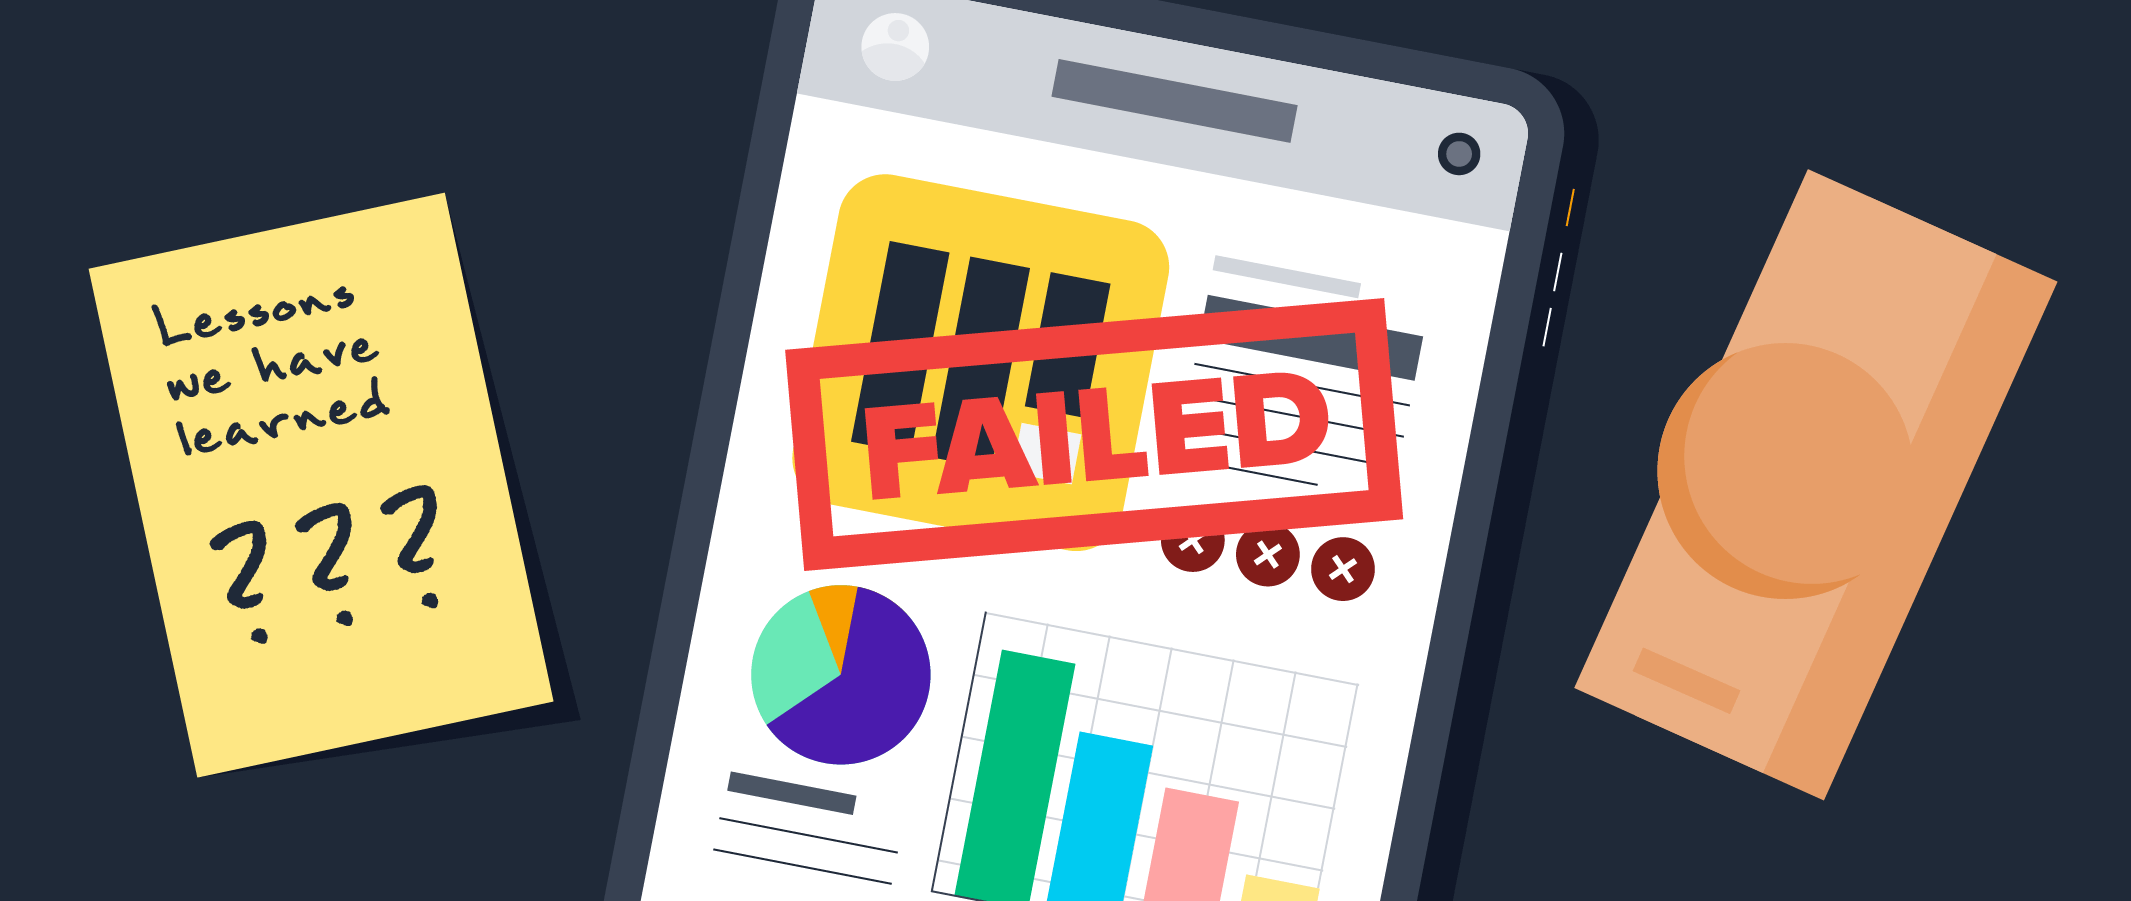 11 Mobile Apps That Failed and How To Learn From Their Mistakes